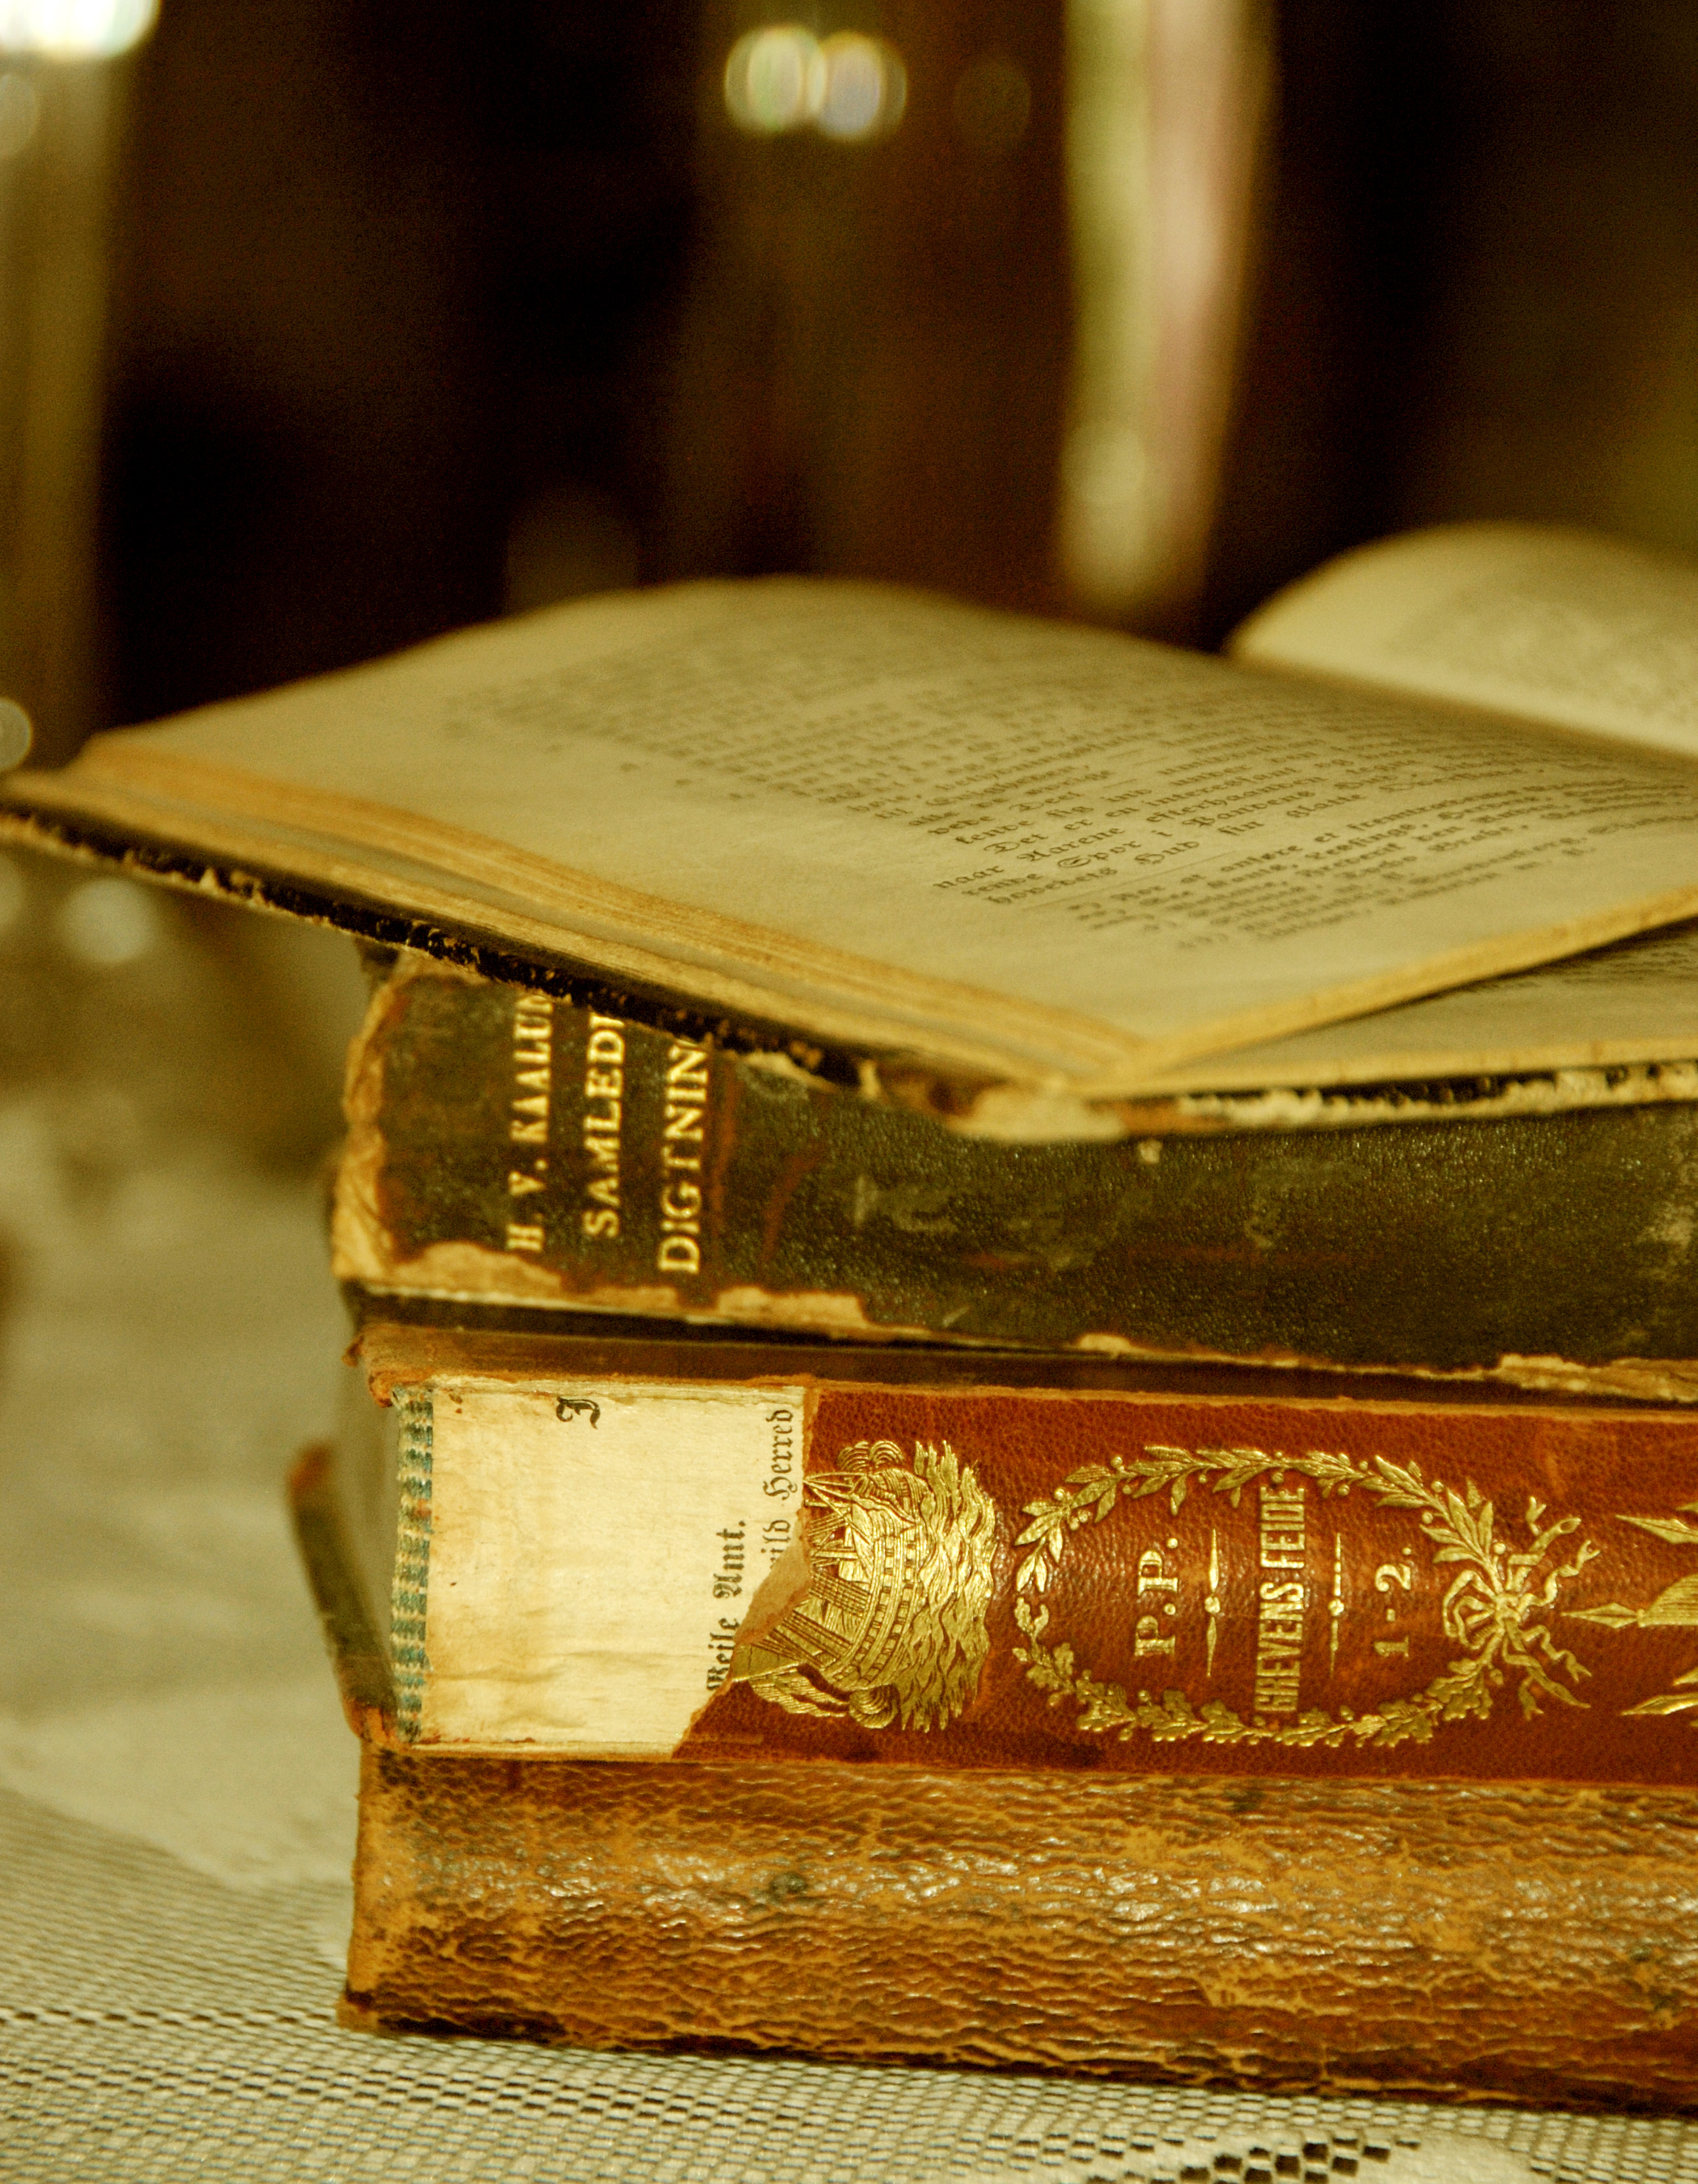 File:Old books - Stories From The Past.jpg - Wikimedia Commons